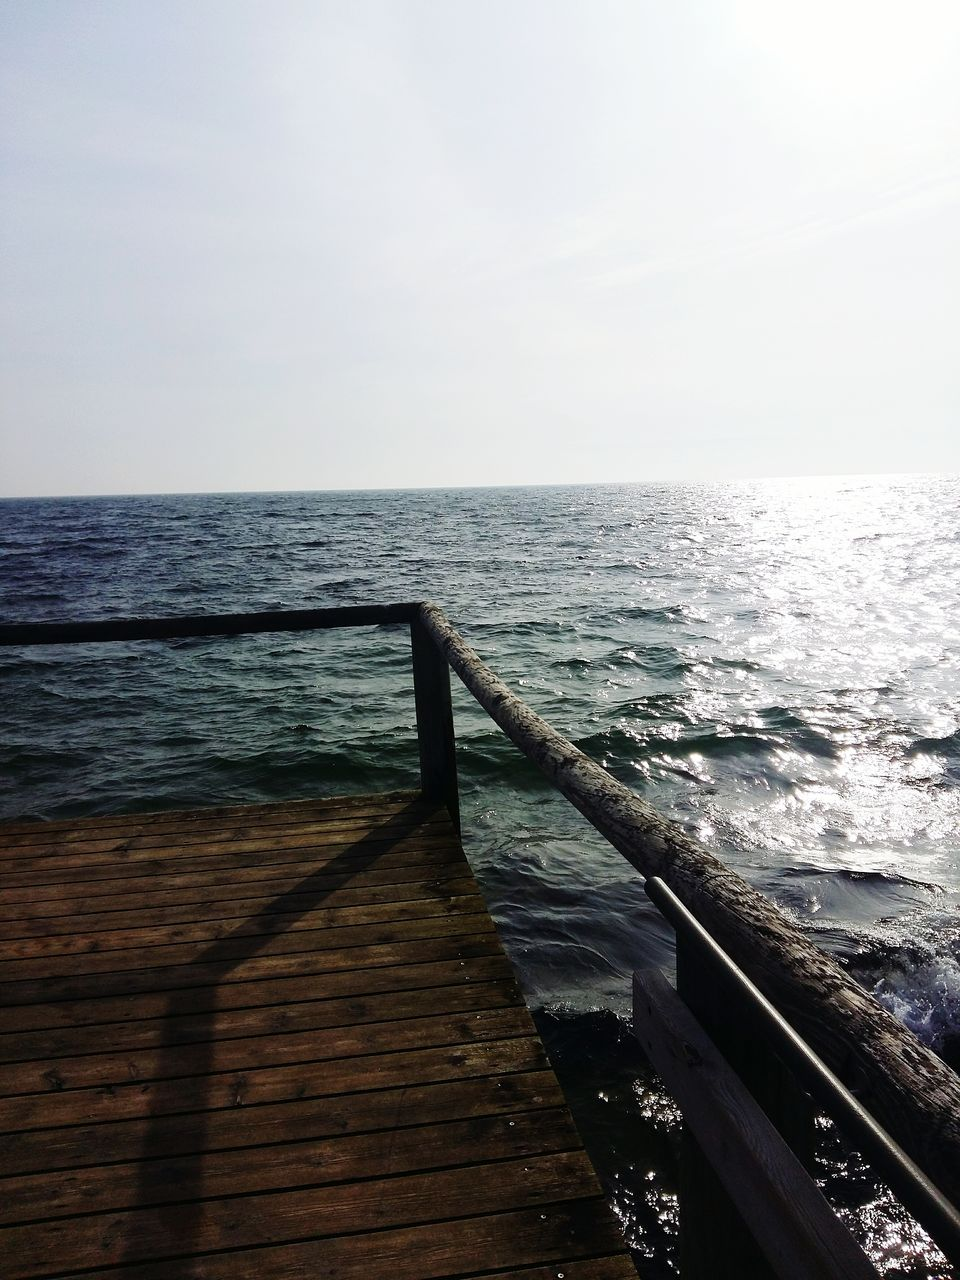 sea, water, horizon over water, nature, scenics, beauty in nature, wood - material, no people, tranquility, tranquil scene, sky, clear sky, outdoors, day